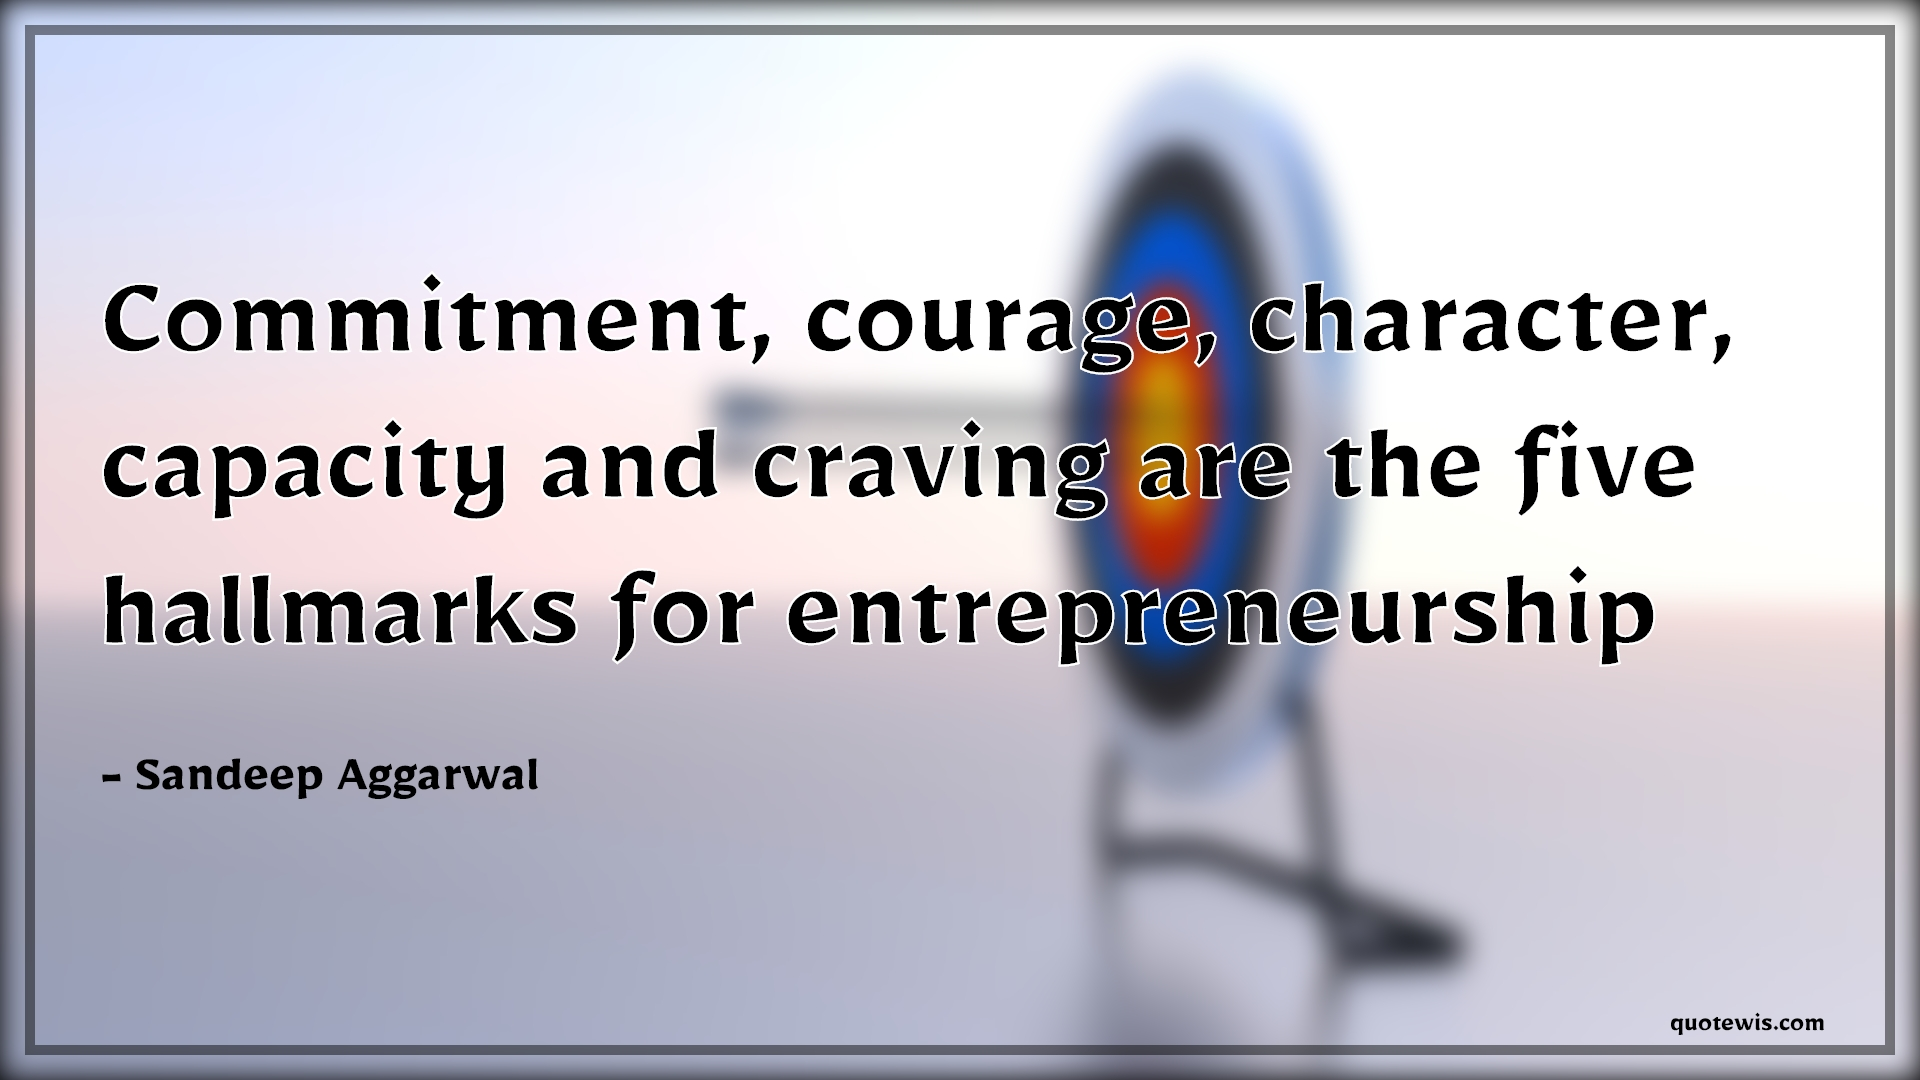 Commitment, courage, character, capacity and craving are the five hallmarks for entrepreneurship